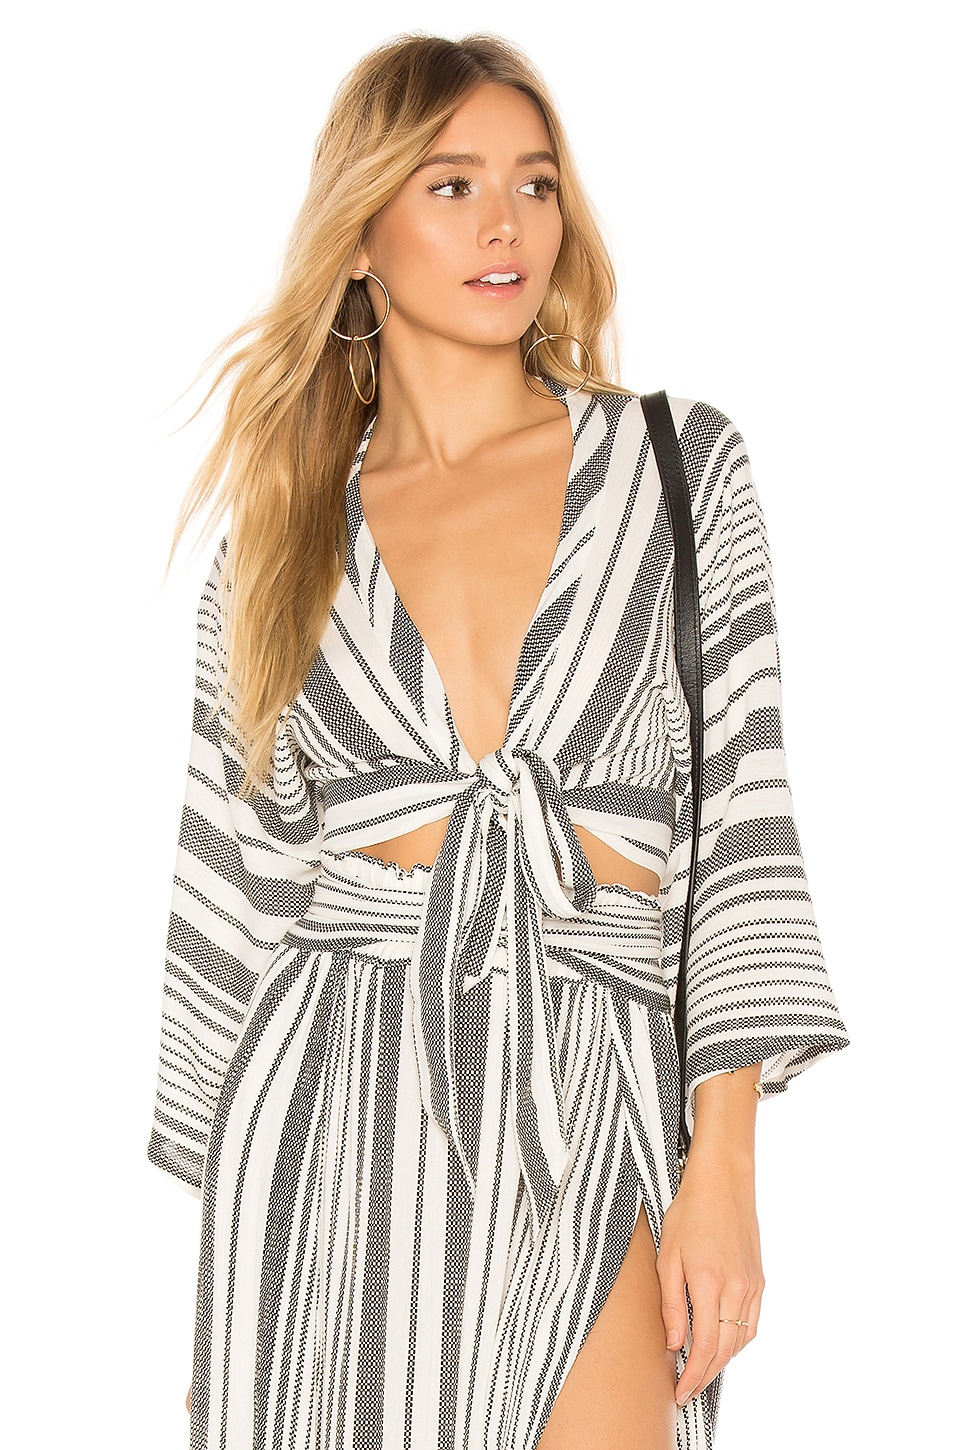 Blue Life Wrapped Top in Boho Stripe